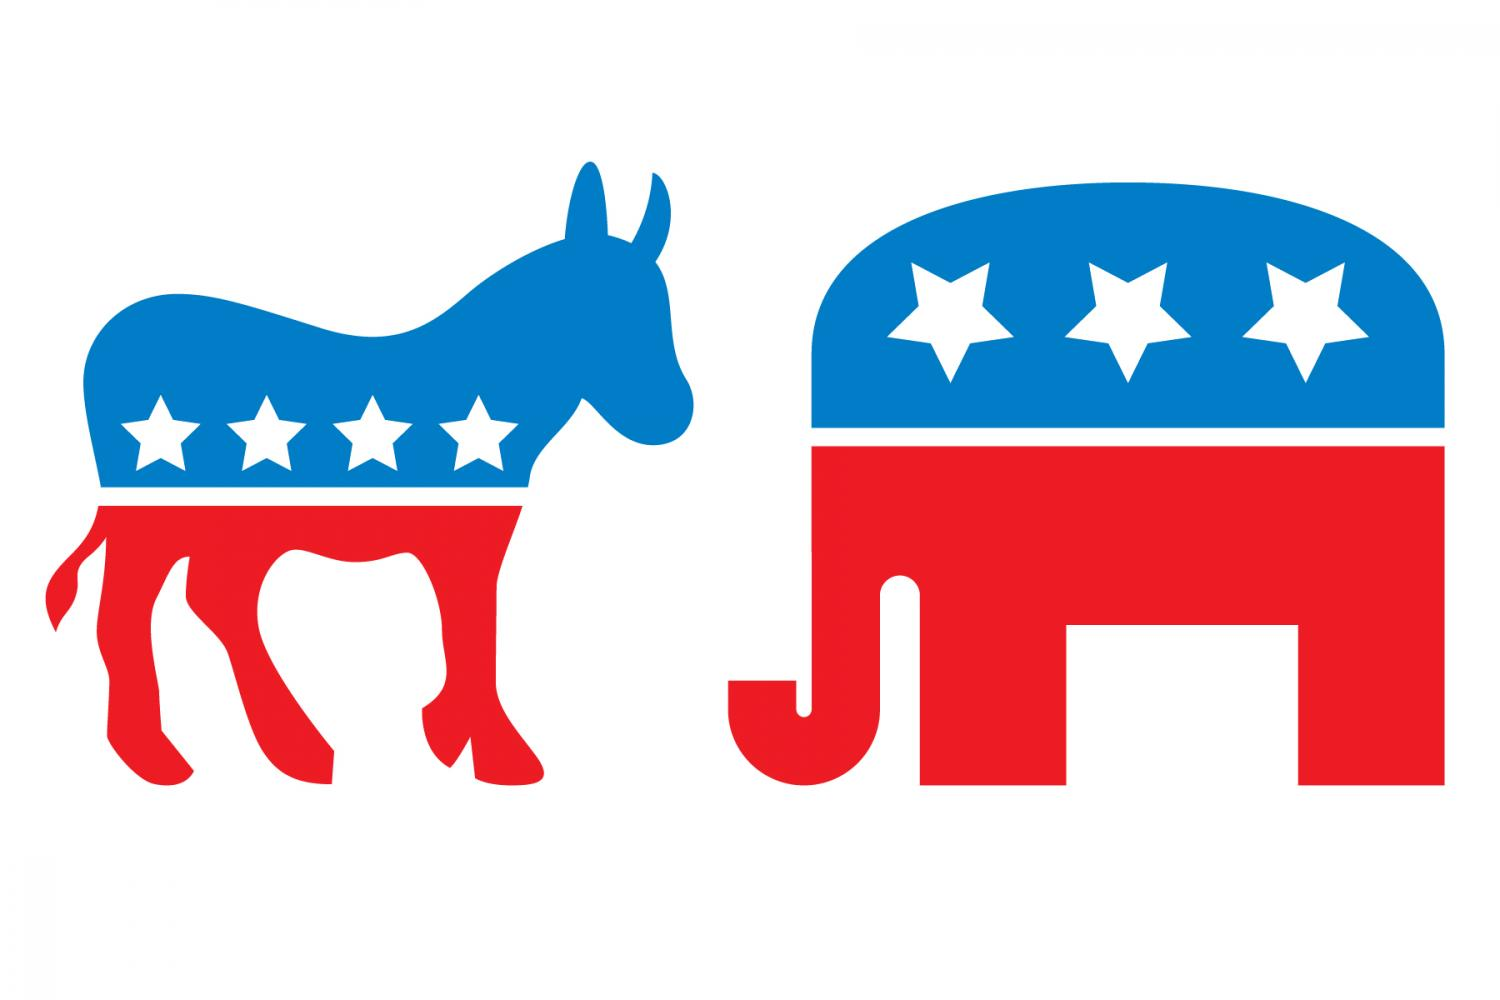 Political left, right both inspired by utopian hopes: study.